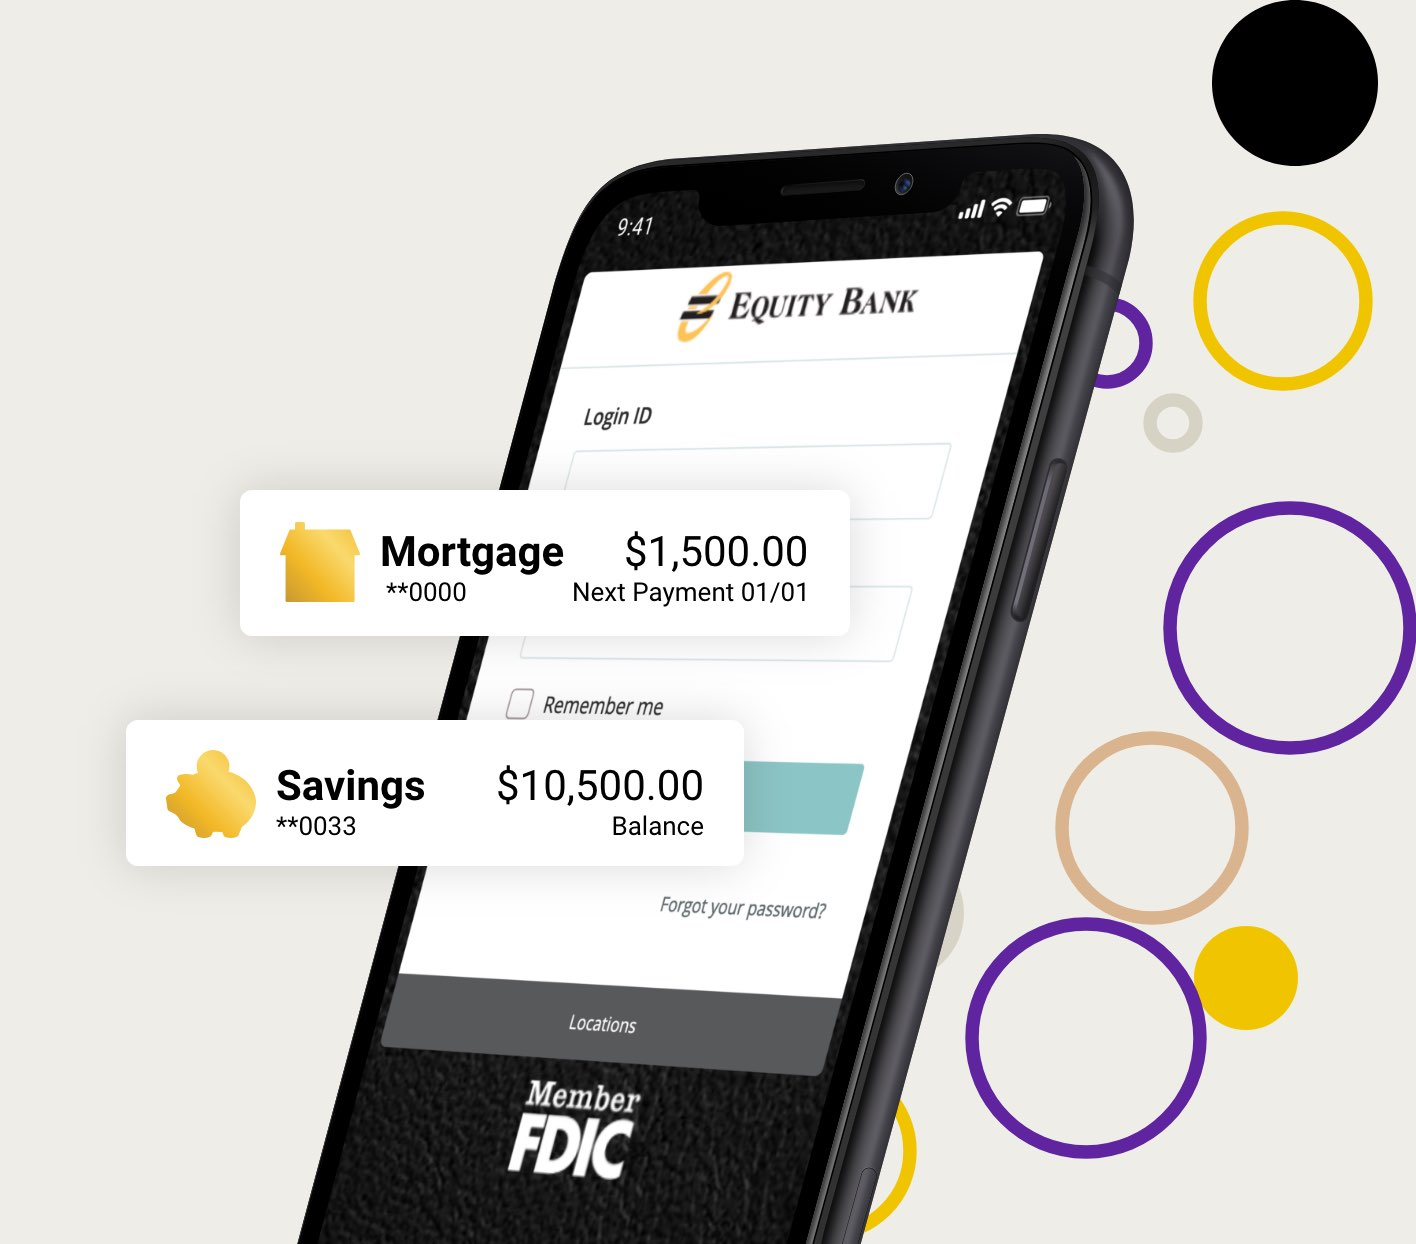 Graphic of cell phone with equity banking app on screen and circles in the background